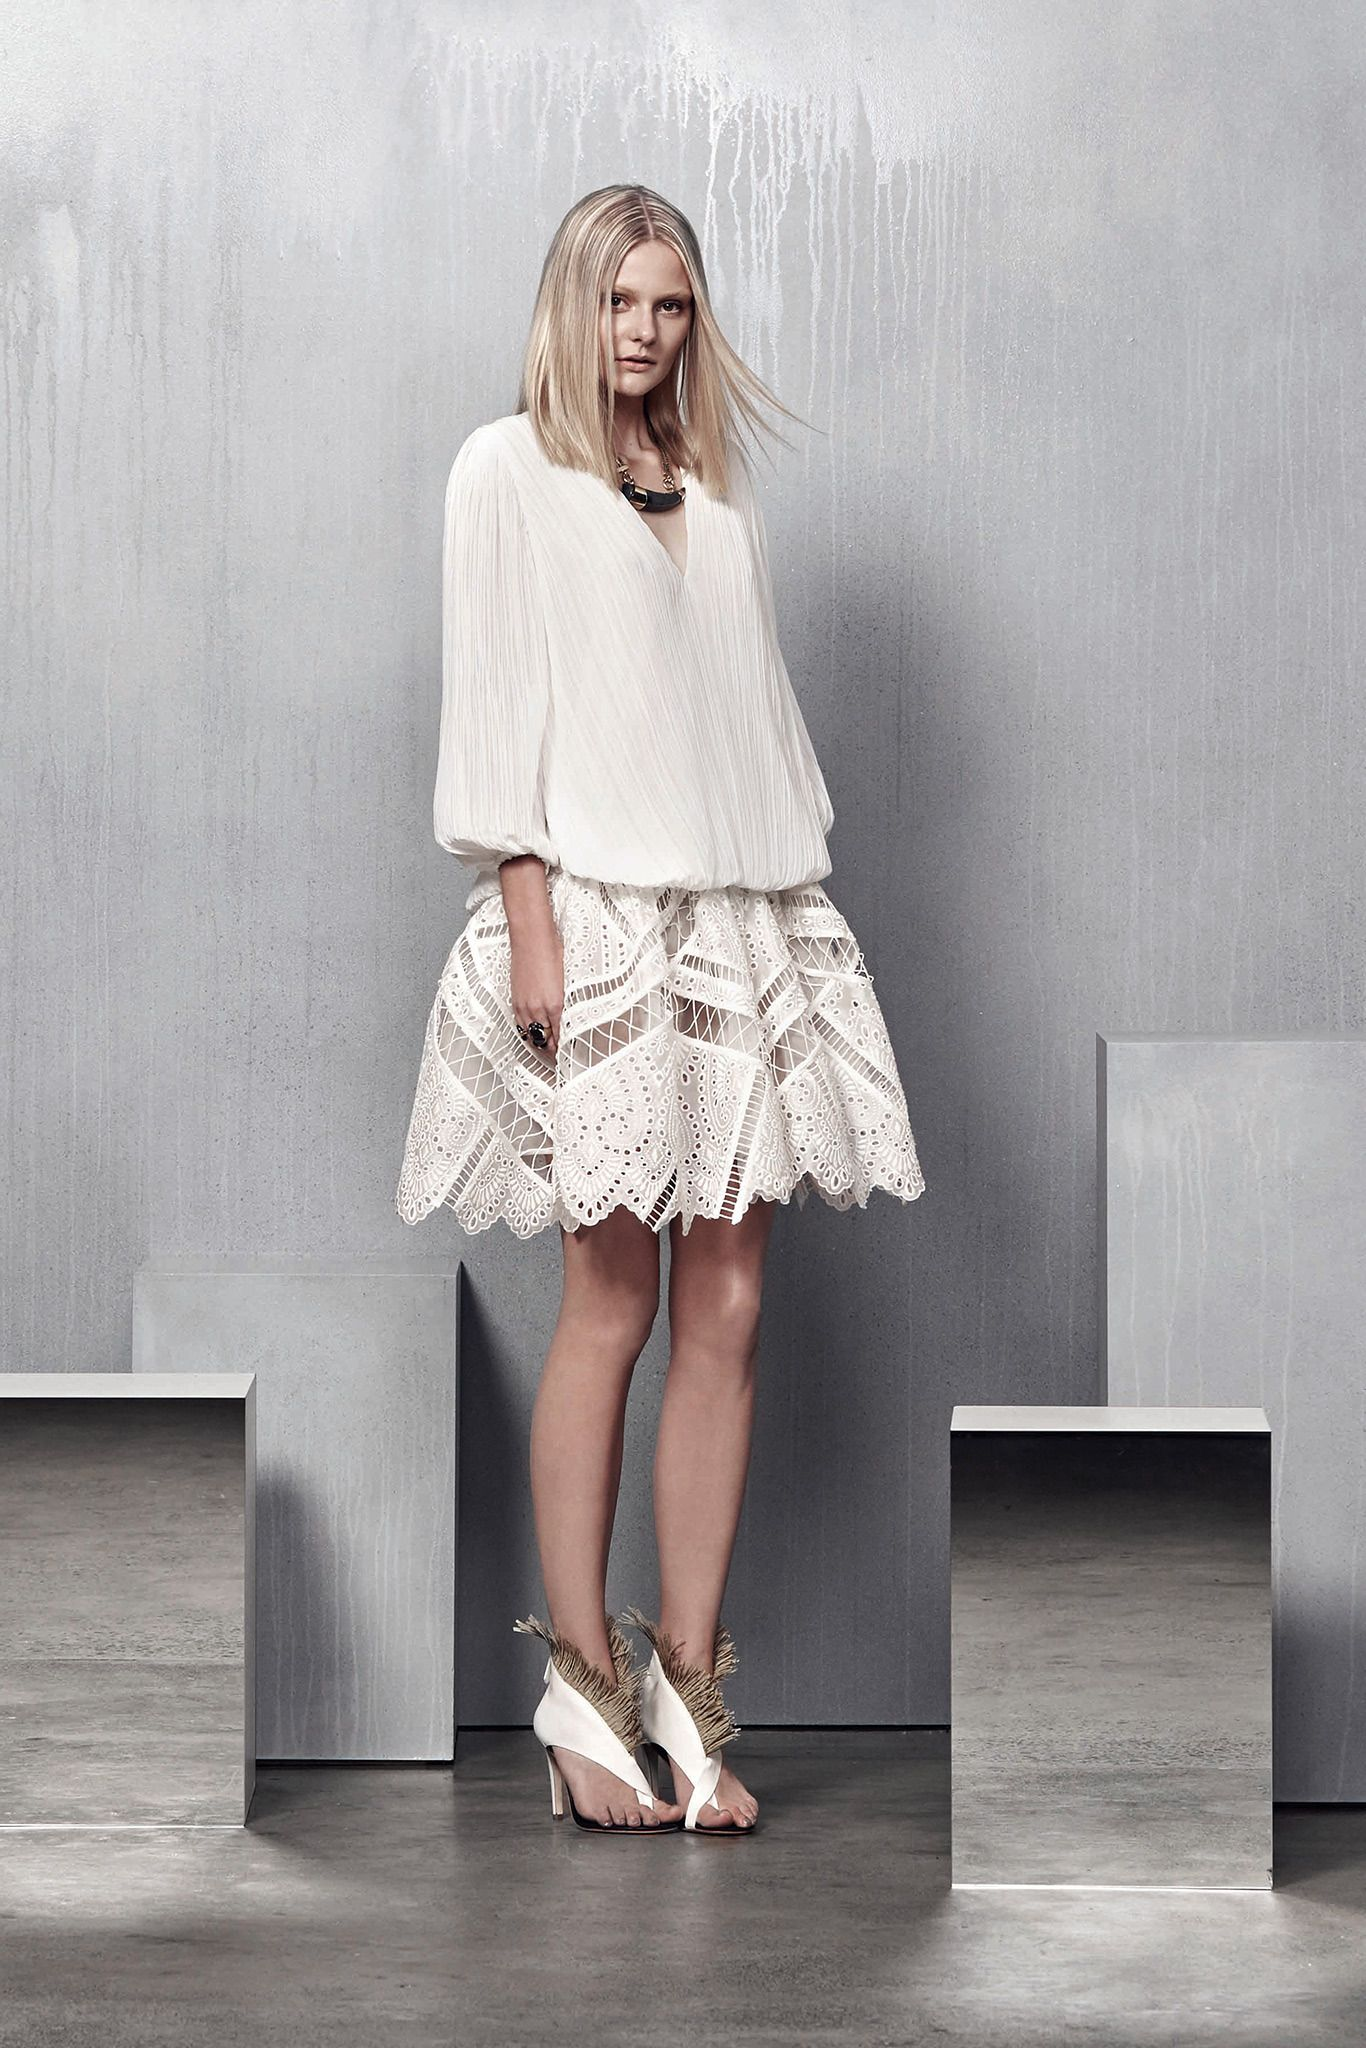 Zimmermann resort look of fashion for women